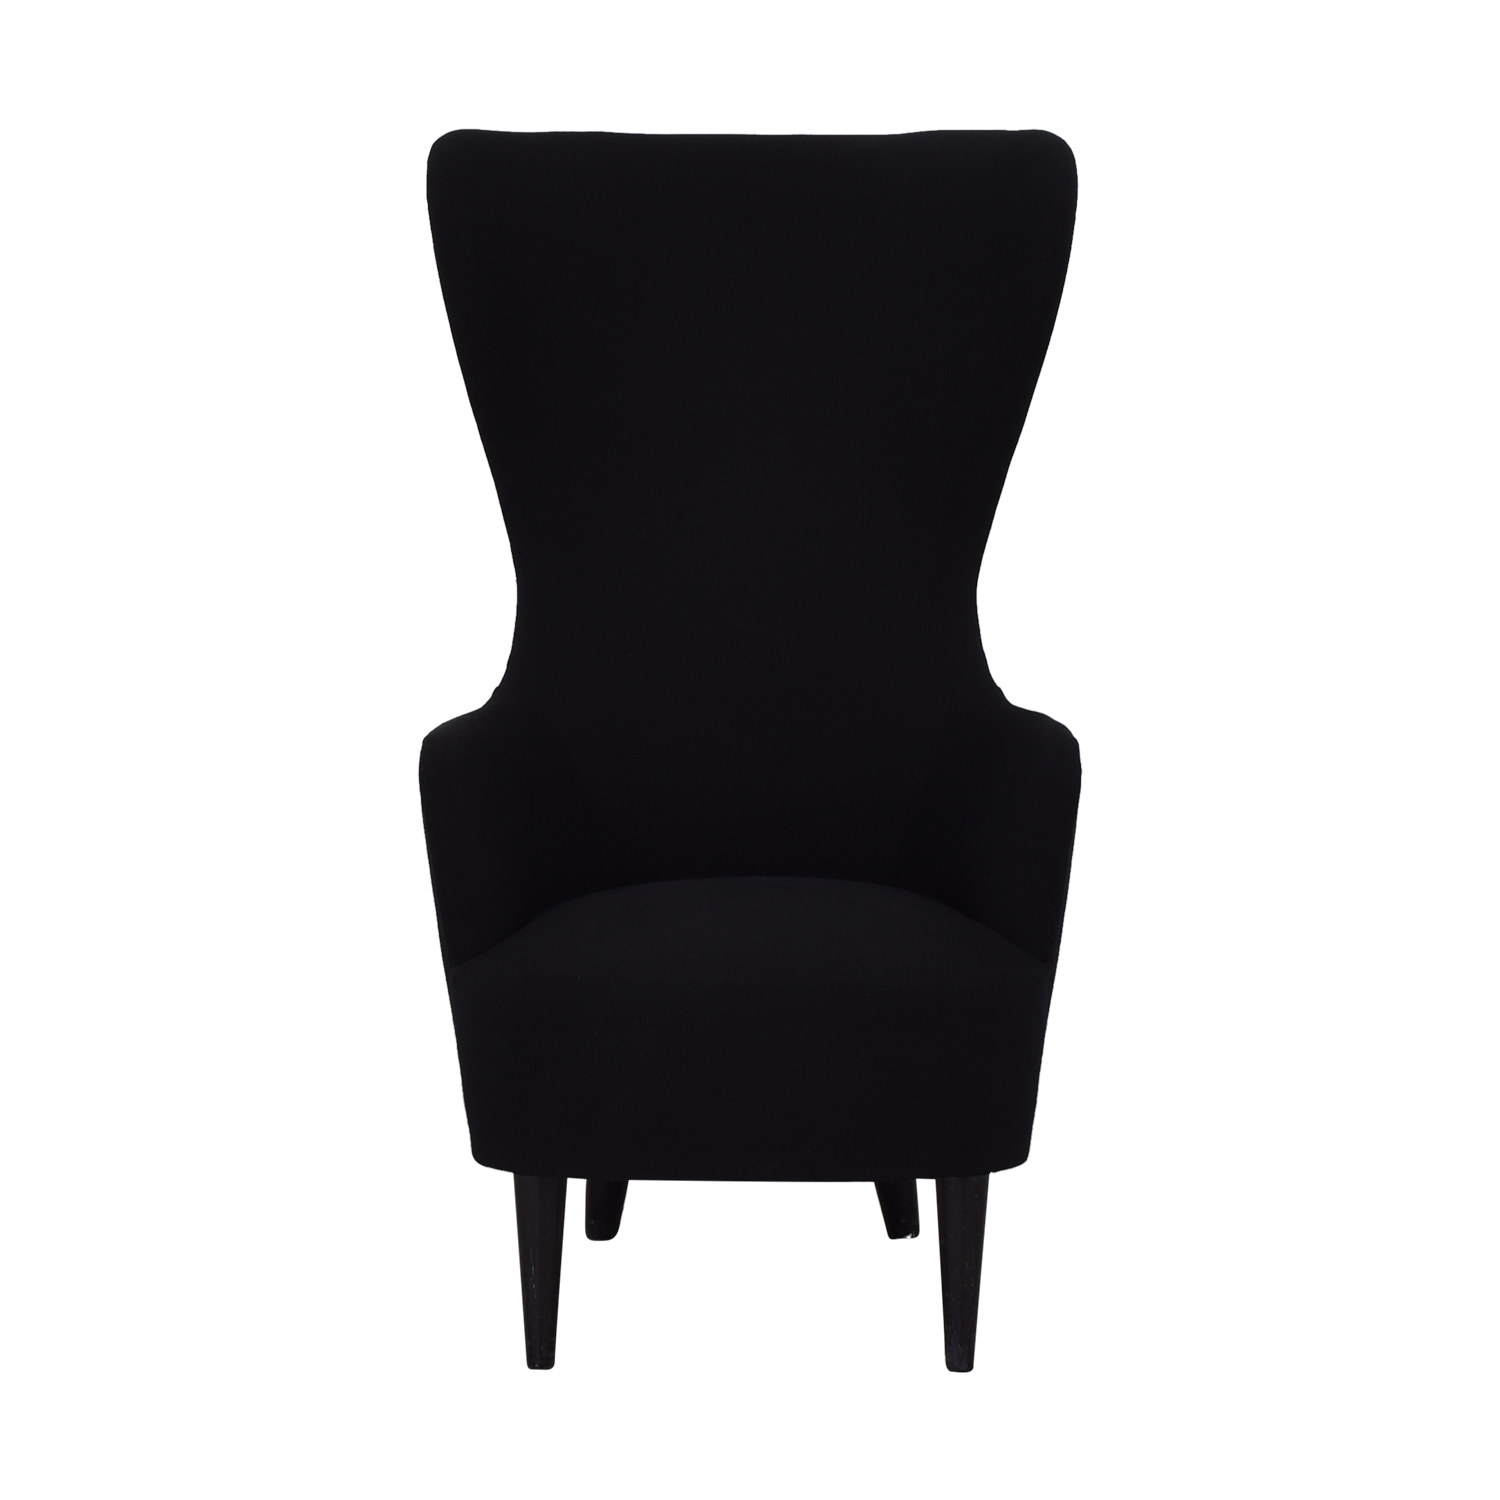 Tom Dixon Wingback Black Leg Hallingdal 65 Chair / Chairs